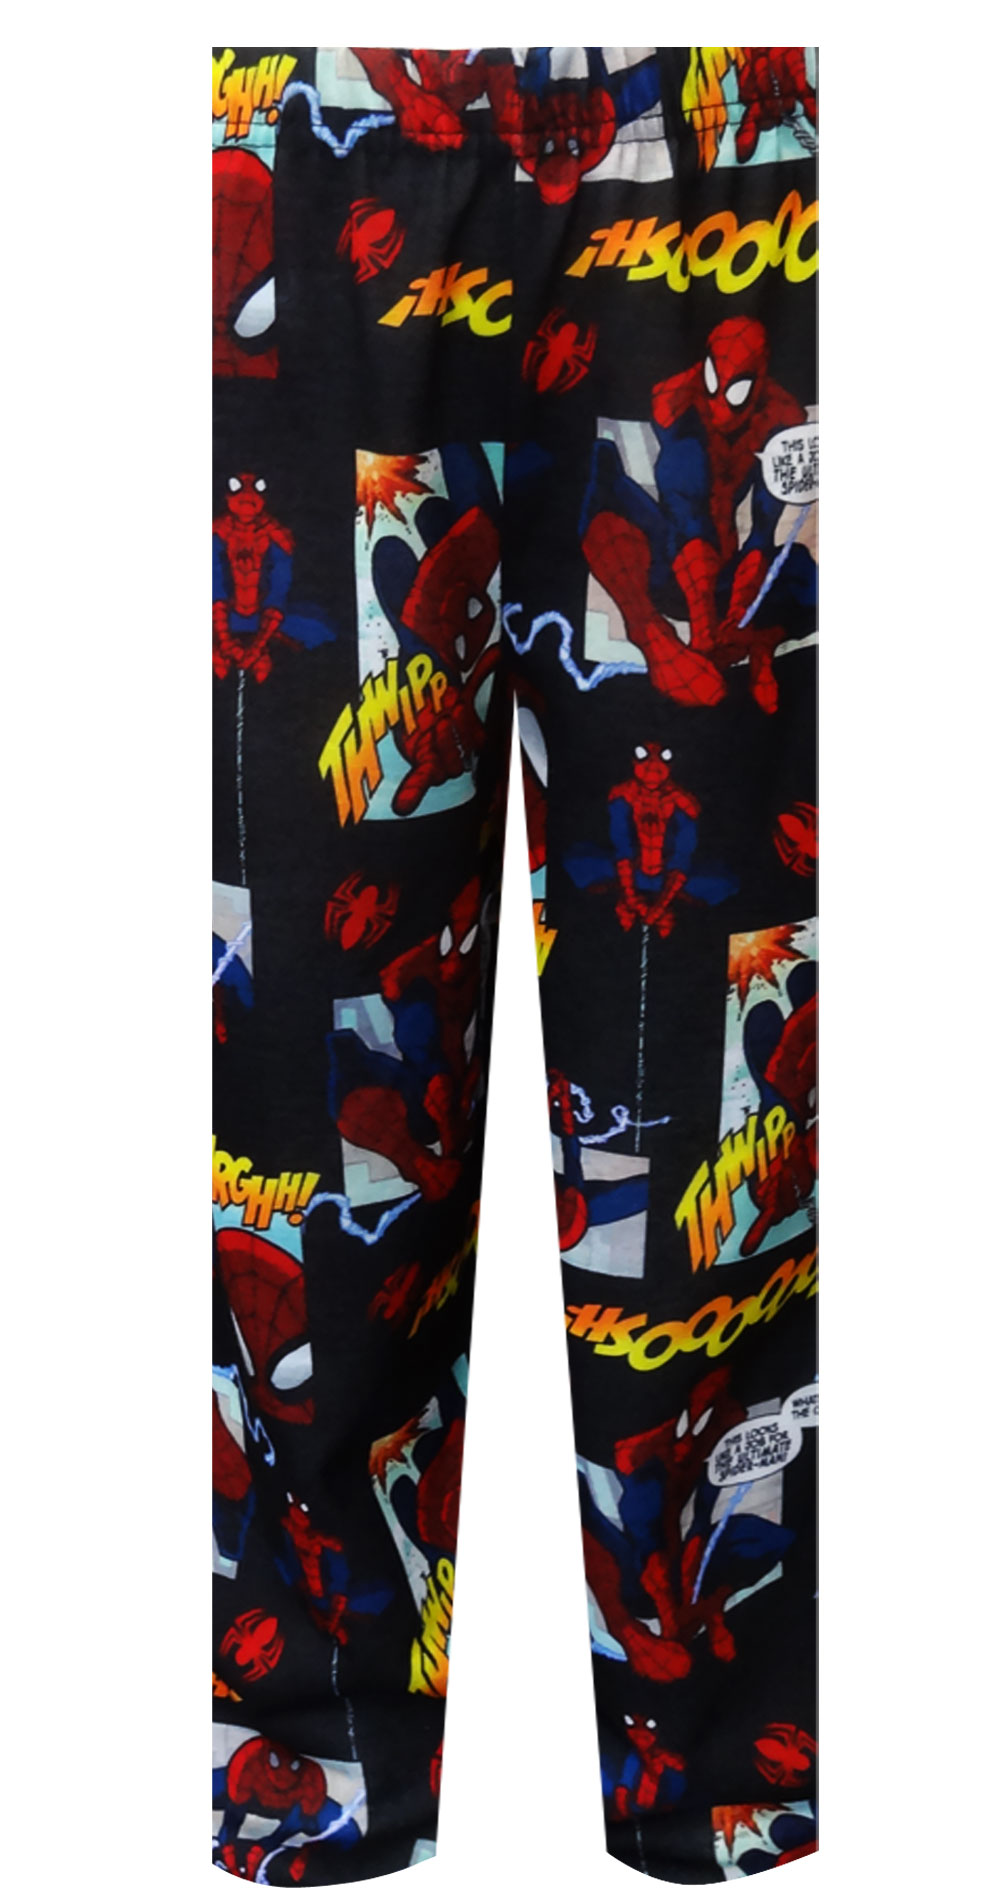 Spider-man Pajamas for Boys. Does your boy dream about swinging through the air like his favorite web slinging superhero? Now he can sleep all night dreaming about battling the Green Goblin in his new favorite Spiderman pajamas for boys.